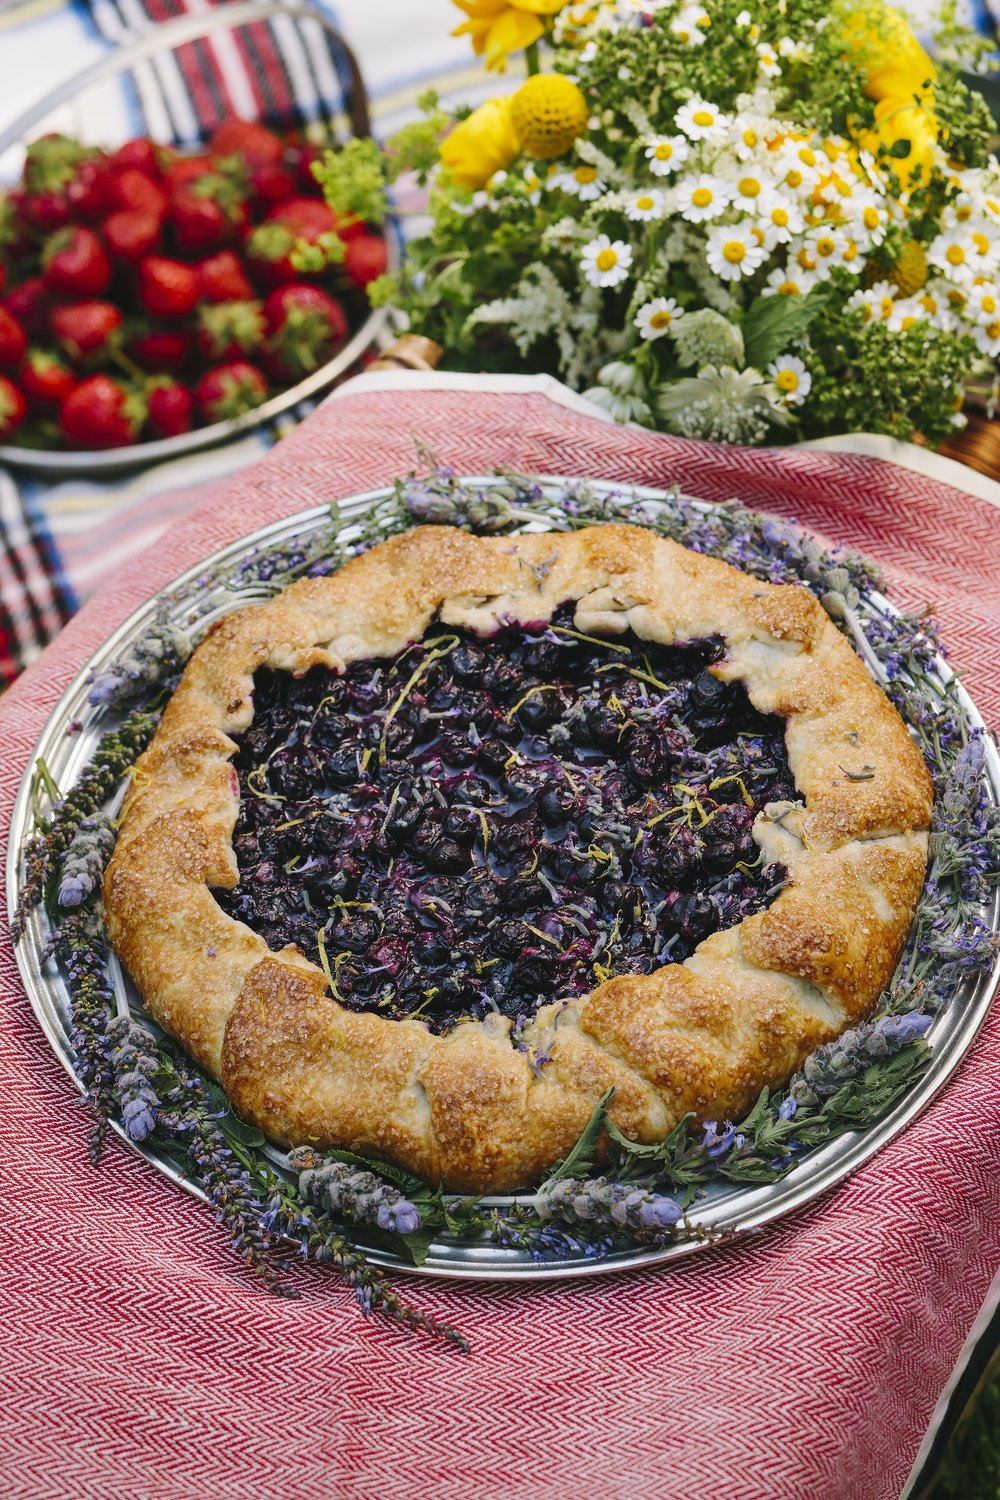 Rustic Blueberry, Lavender & Lemon Galette - In Montana, picking huckleberries in late August before the black, brown, and grizzly bears eat all was a right of passage--one in the bucket, two or three in the mouth. The mountainsides are purple with berries. Early in the season it does not matter how many are eaten, there are always plenty for making pancake syrup, huckleberry pie, and even leftovers for a few jars of jam for the pantry. Huckleberries, however, remain an uncultivated fruit and a grizzly bear's favorite dessert. What to do if this tiny berry is unavailable in New England? Blueberries of course! While bigger and lighter blue than their northwest cousins, blueberries are fabulous for baking whether fresh or frozen with the advantage of year round availability. Another perk? Picking without danger of ursus arctos horribilis lurking in the bush ready to swipe your filled pail and cause man versus beast pandemonium. Lavender, also harvested in late summer when blueberries are their berry best, compliments the sweet tangy taste of berries and looks gorgeous against the indigo blue of the fruit. When the galette is served with vanilla ice cream (highly recommended), the pie filling turns a lovely shade of Provençal lavender. A bit of lemon and this round wrapped fruit filled dessert, although rustic in appearance, has a sophisticated, complex taste capable of holding court at a formal dinner gathering.